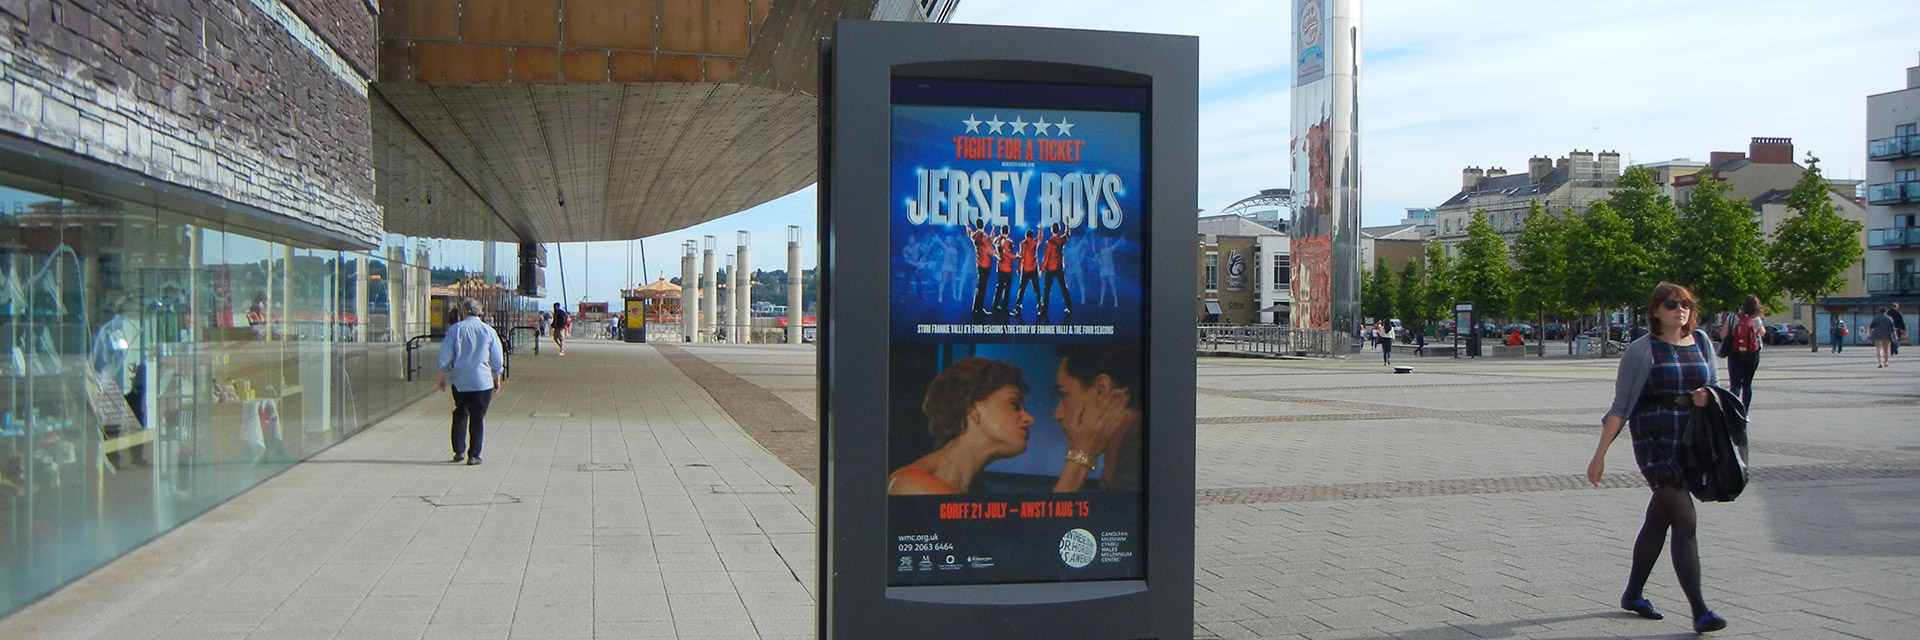 Wales Millennium Centre, 2 65 Inch Double Sided Outdoor Screens